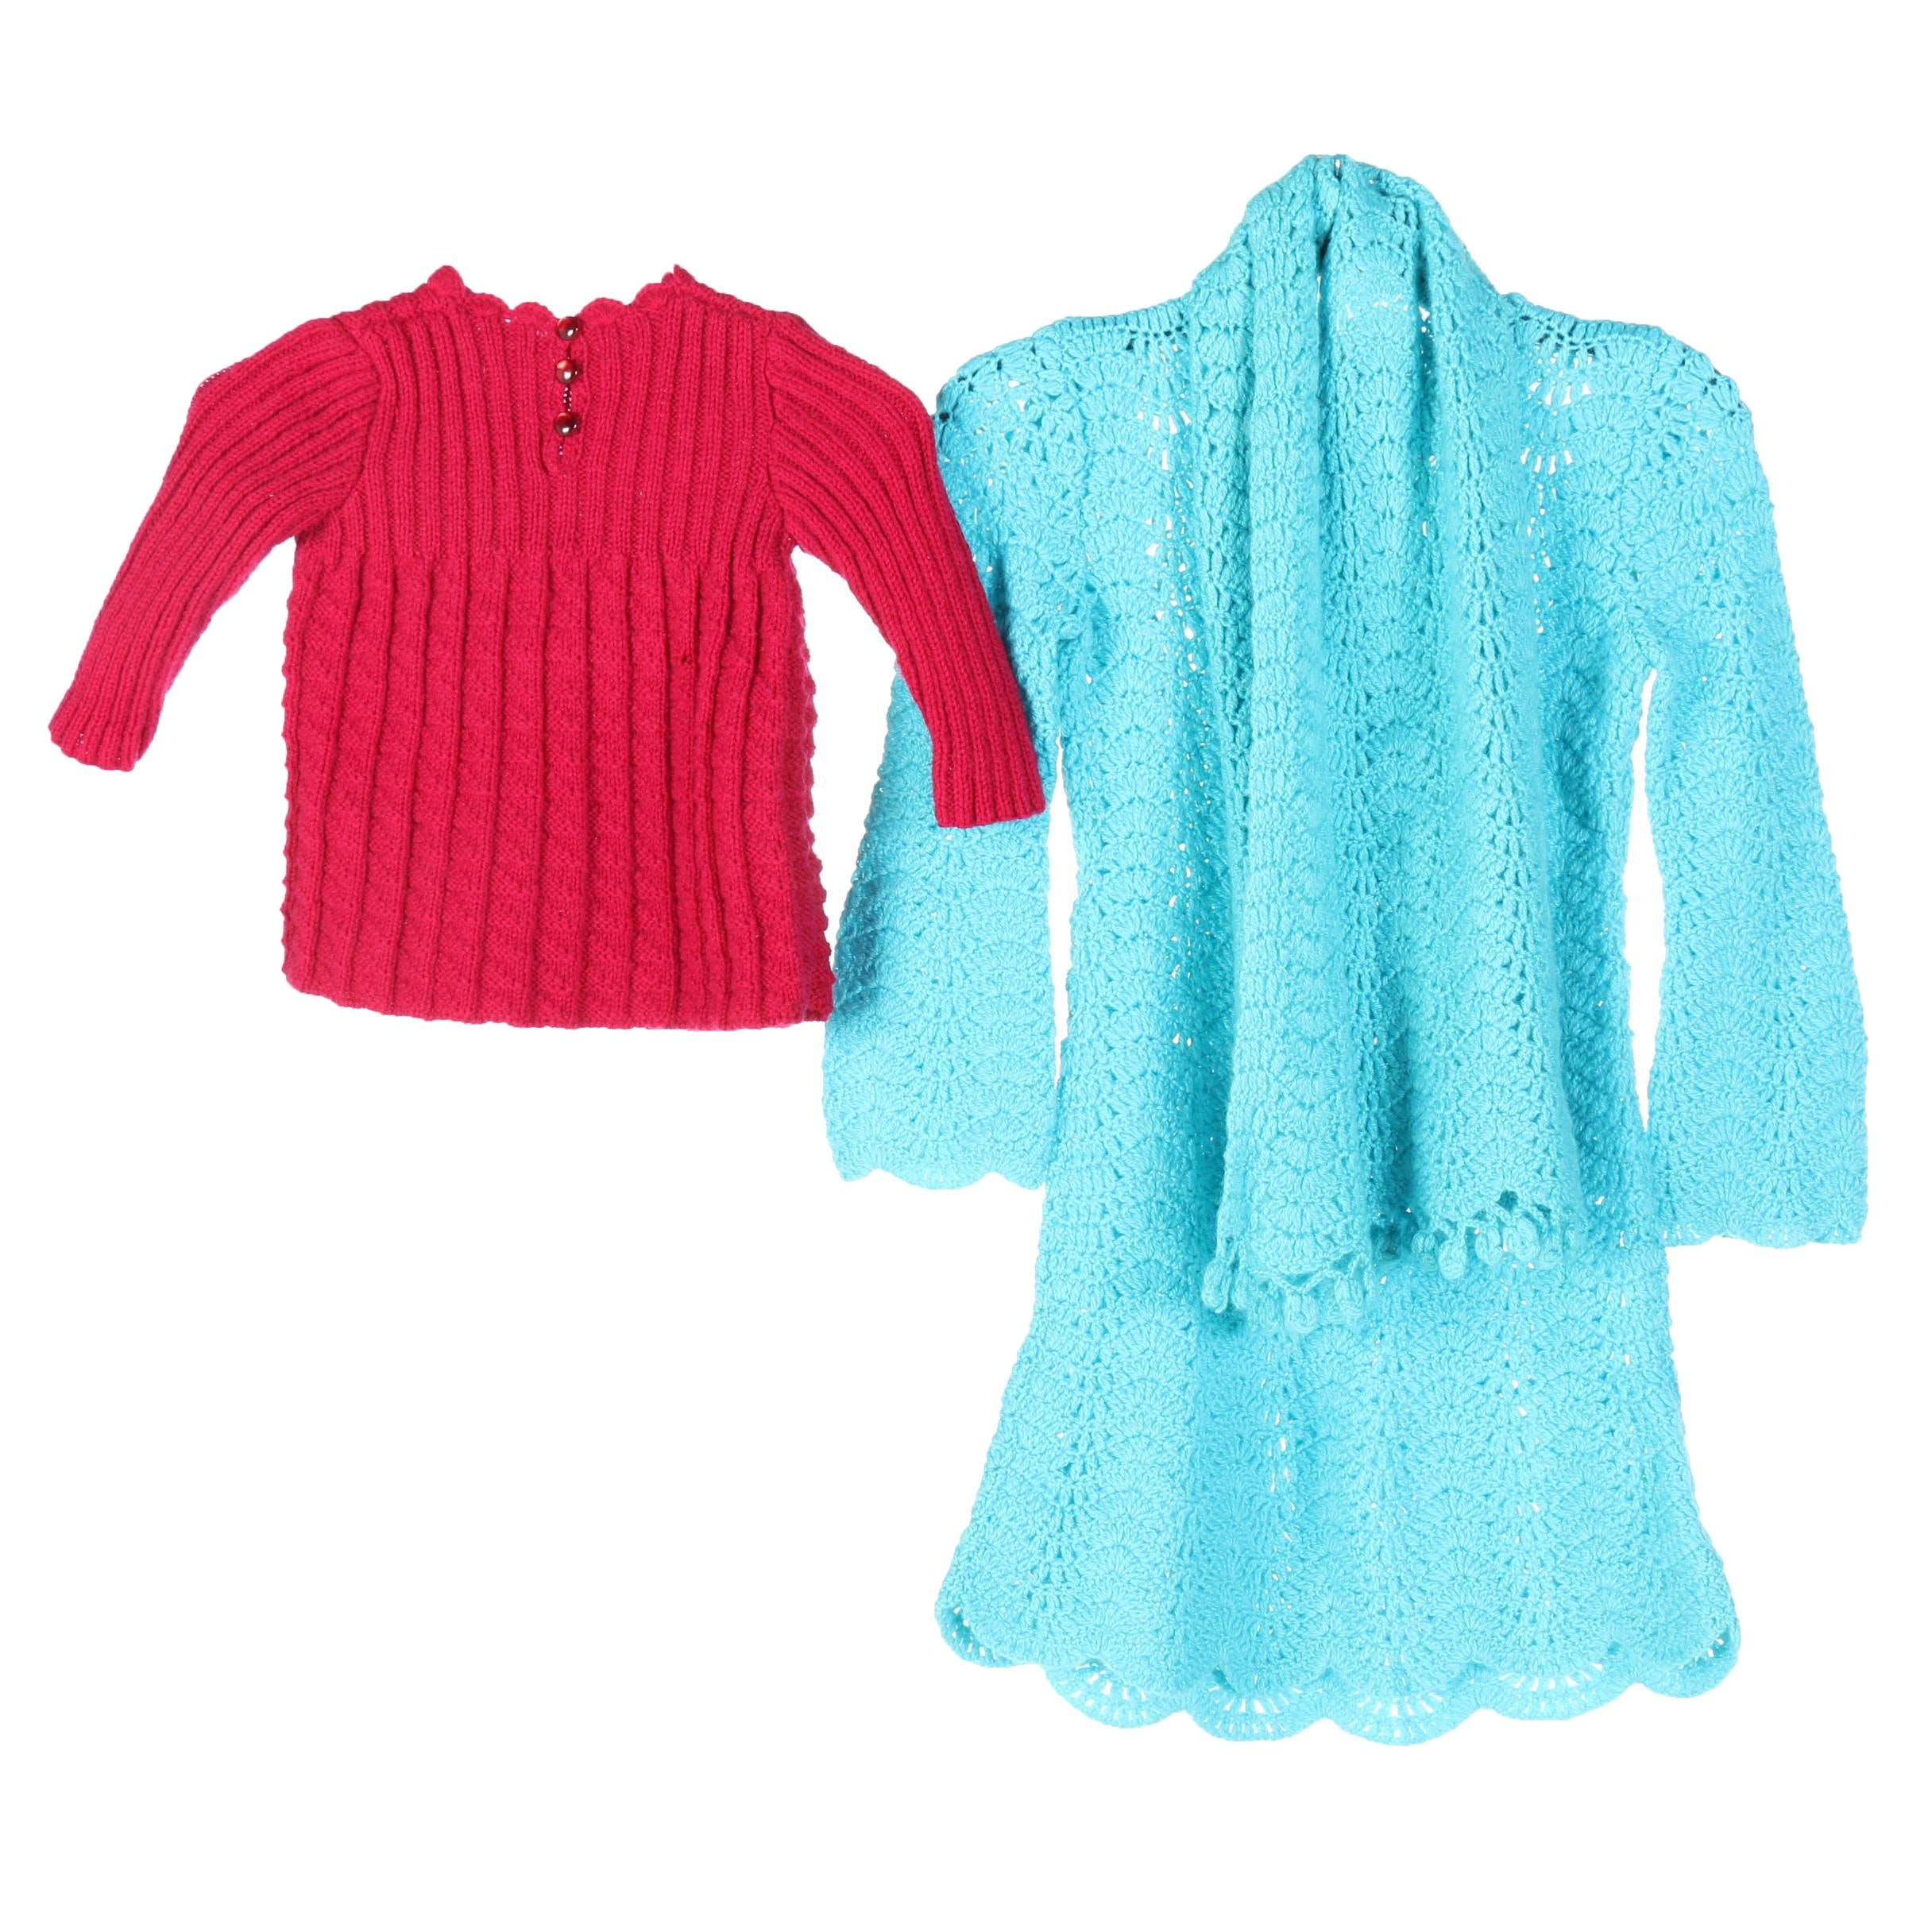 Crocheted and Knitted Garments